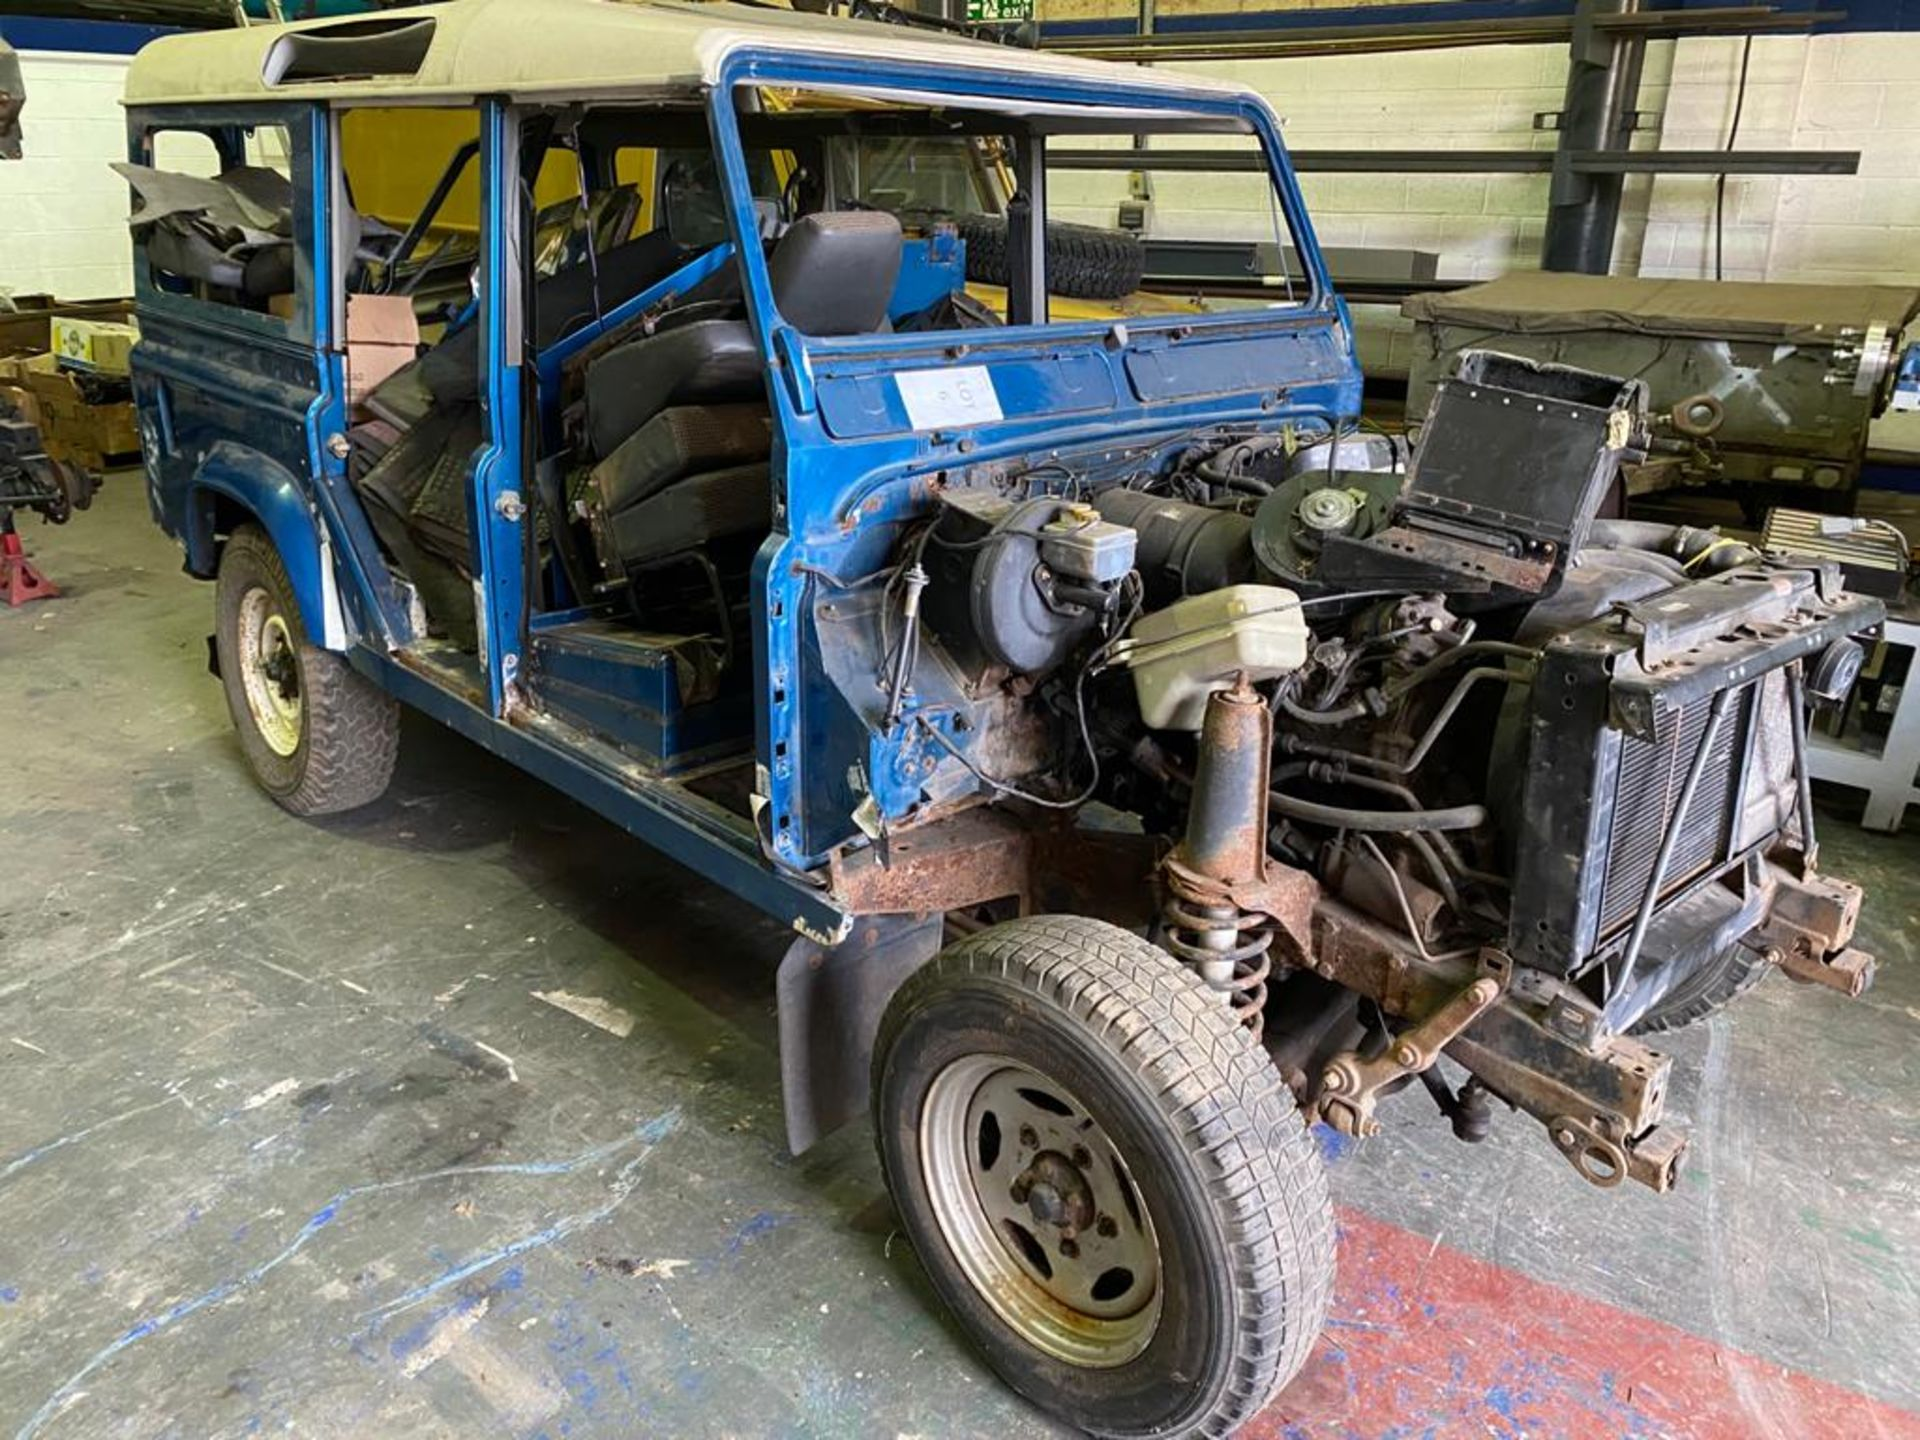 Land Rover 110 County, 300 TDI Engine Appears Mostly Complete - No Bumper, Bonnet, Glass etc As